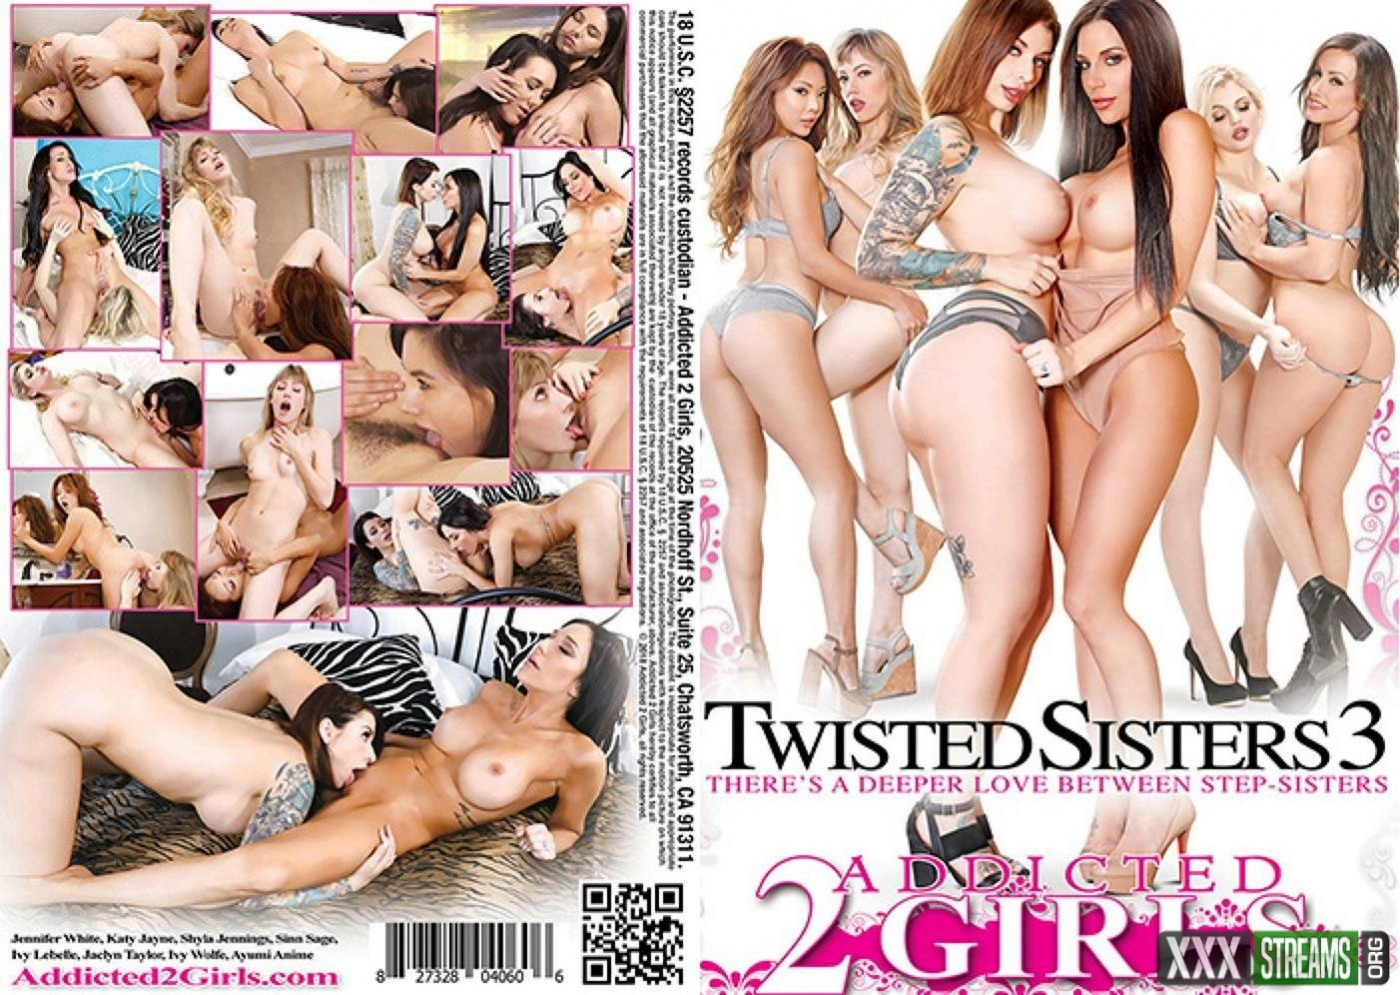 Twisted_Sisters_3__2018_d9fdd9e58fca367d.jpg